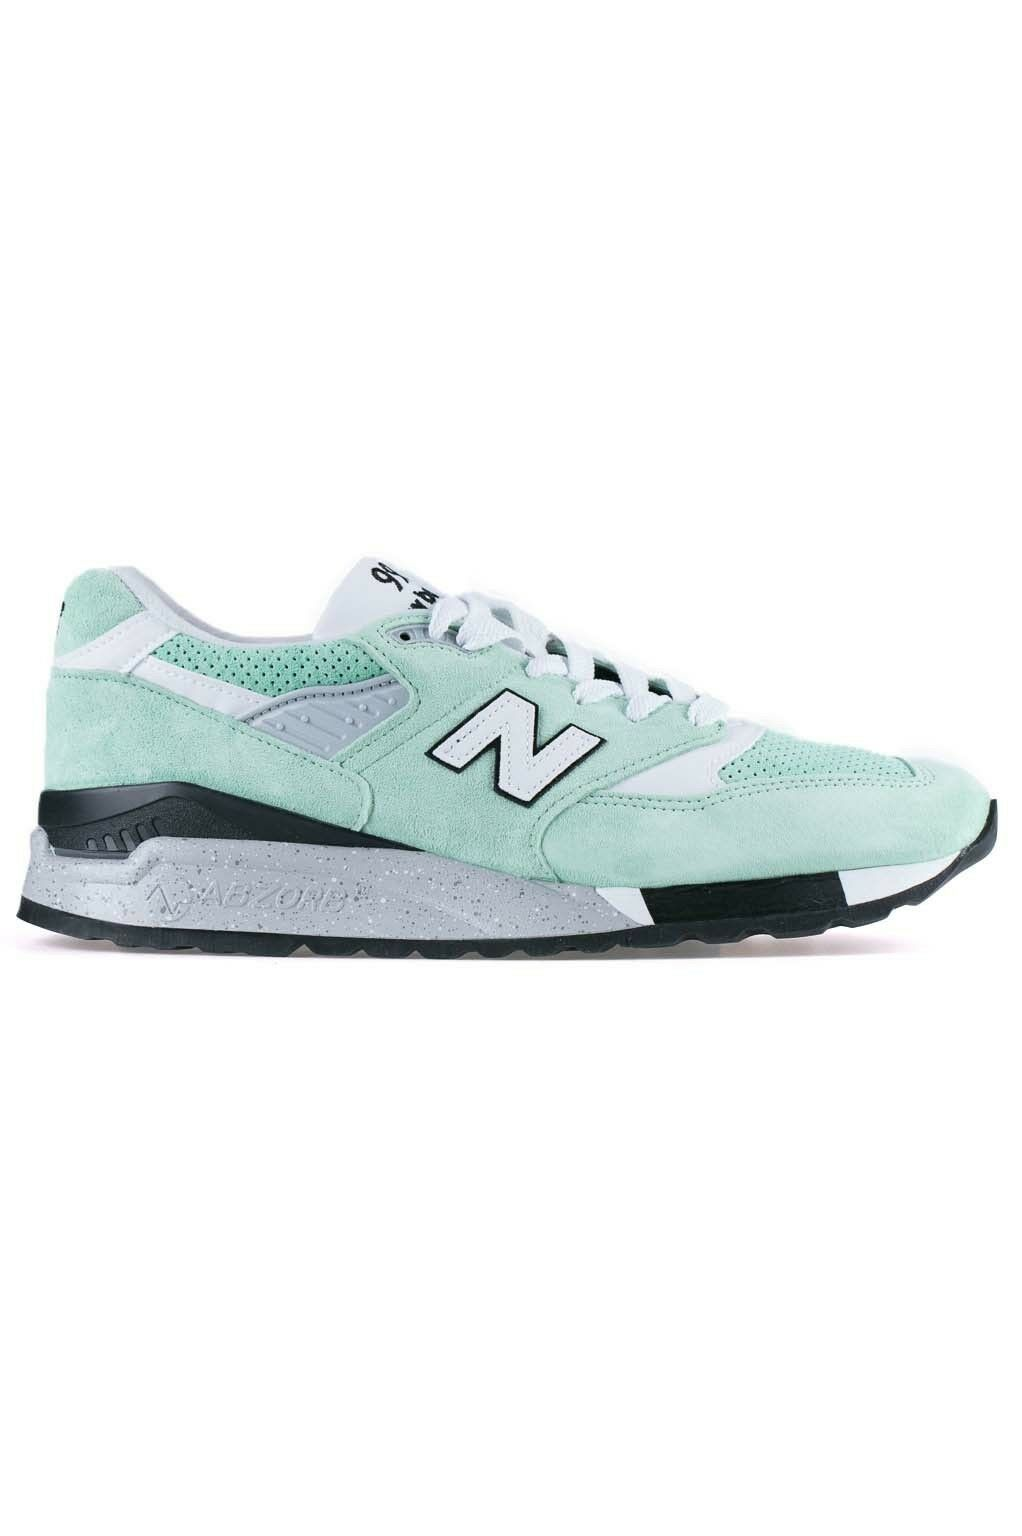 new arrival 96415 e17bc MADE 6 SUEDE PIG MINT M998XAC BALANCE NEW NEW IN SIZE 209.99 ...